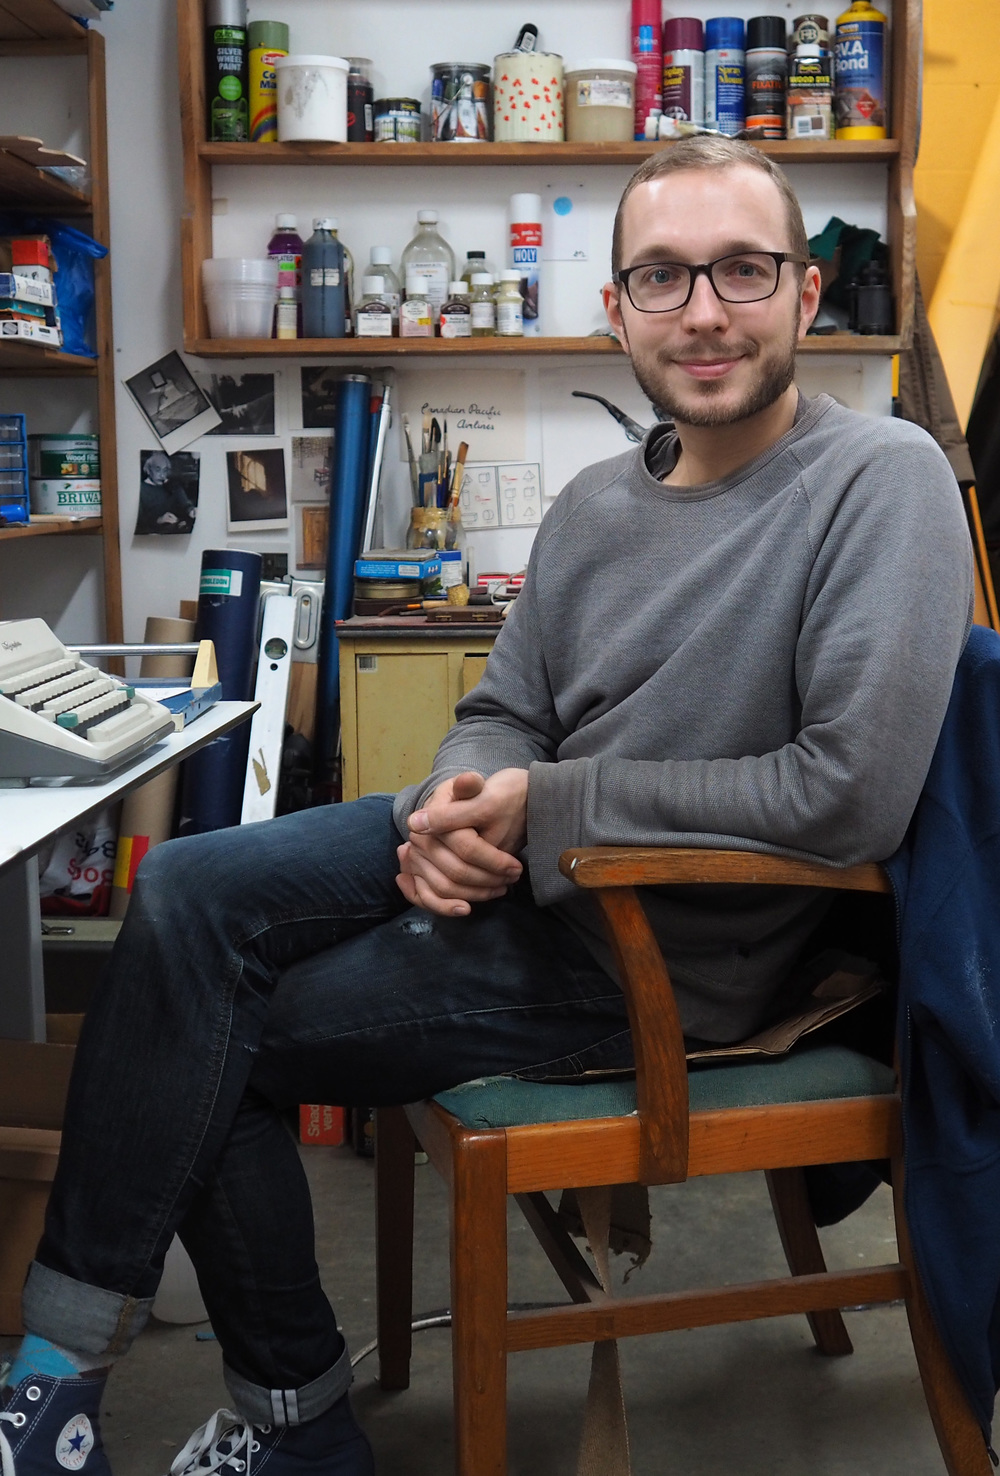 Kasper Pincis in his studio (Philip Jones, December 2015)